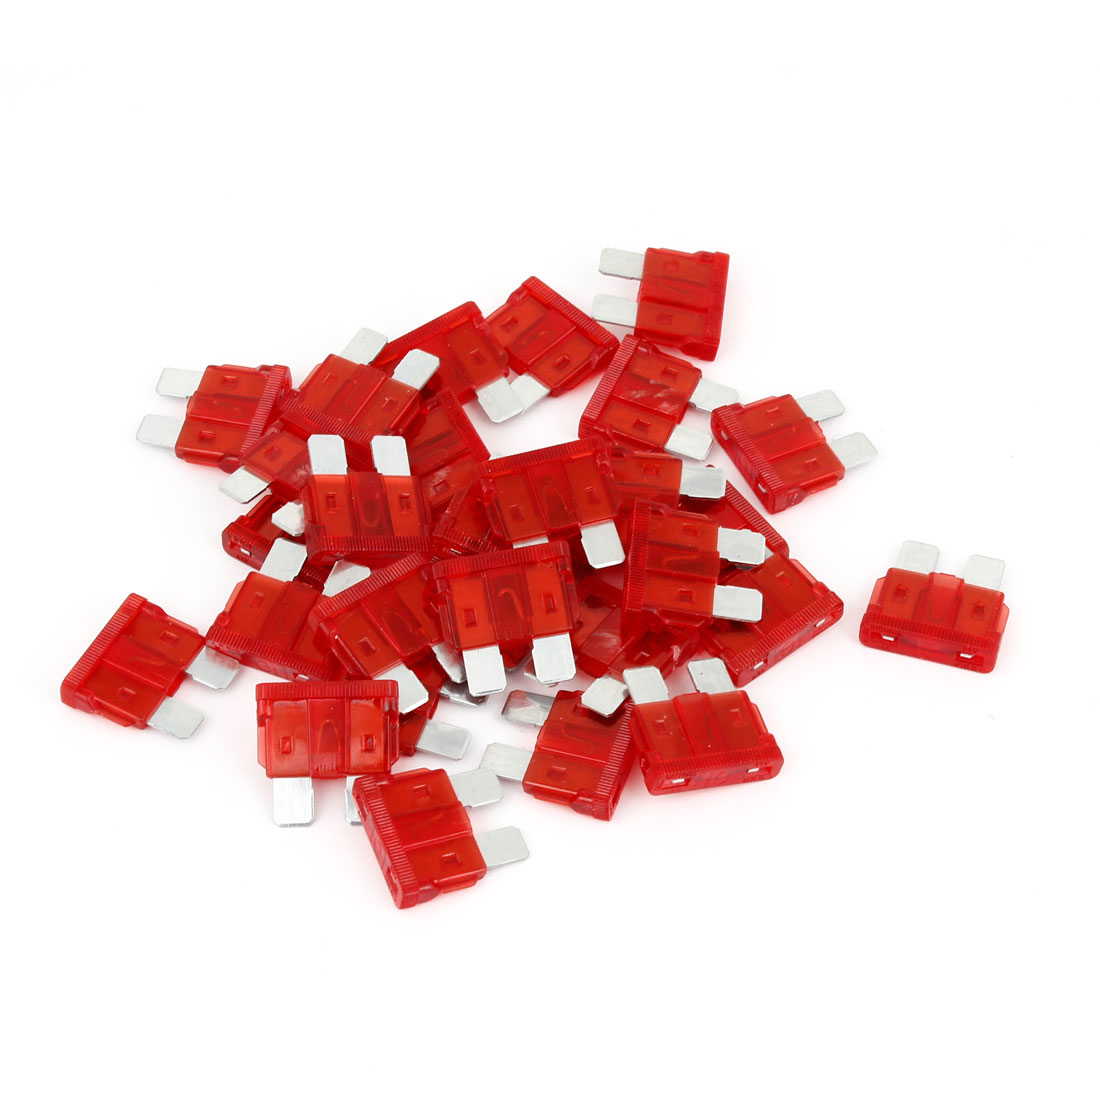 Automotive Car Plastic Coated Blade Fuse 5A Red Auto Fuses 32V 30 Pcs